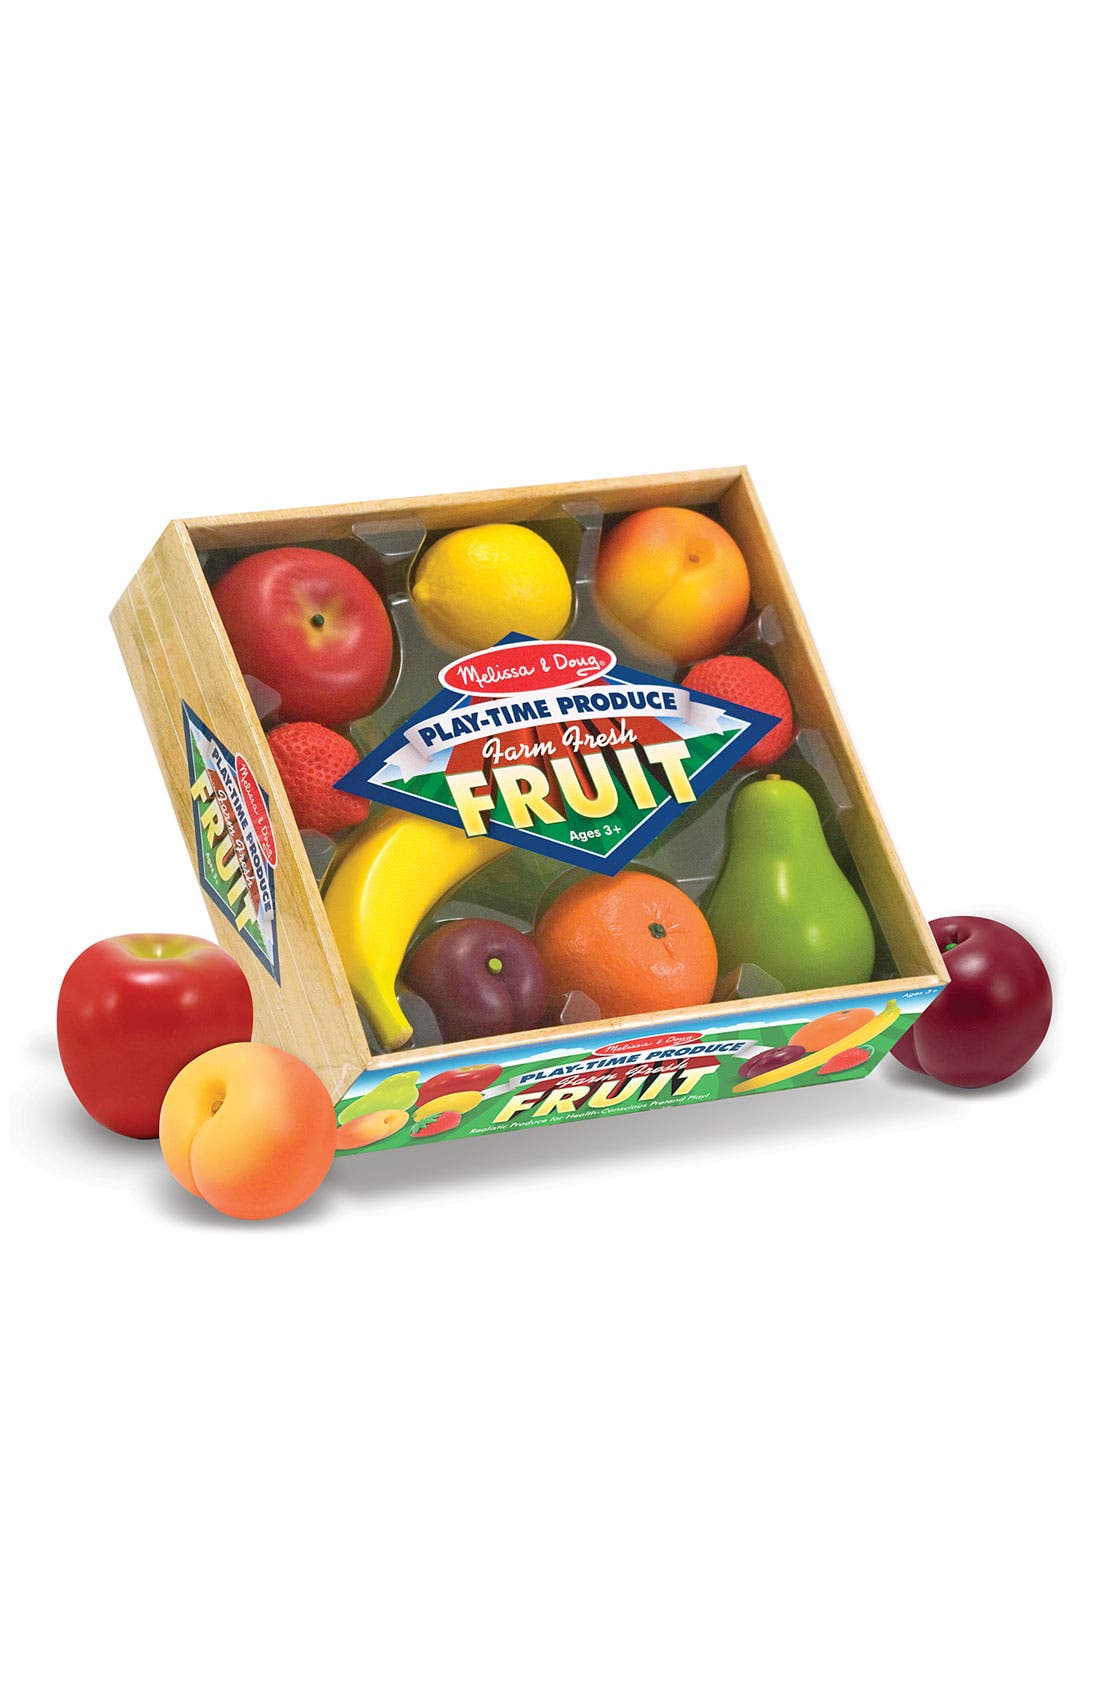 Main Image - Melissa & Doug Play Time Fruit Crate